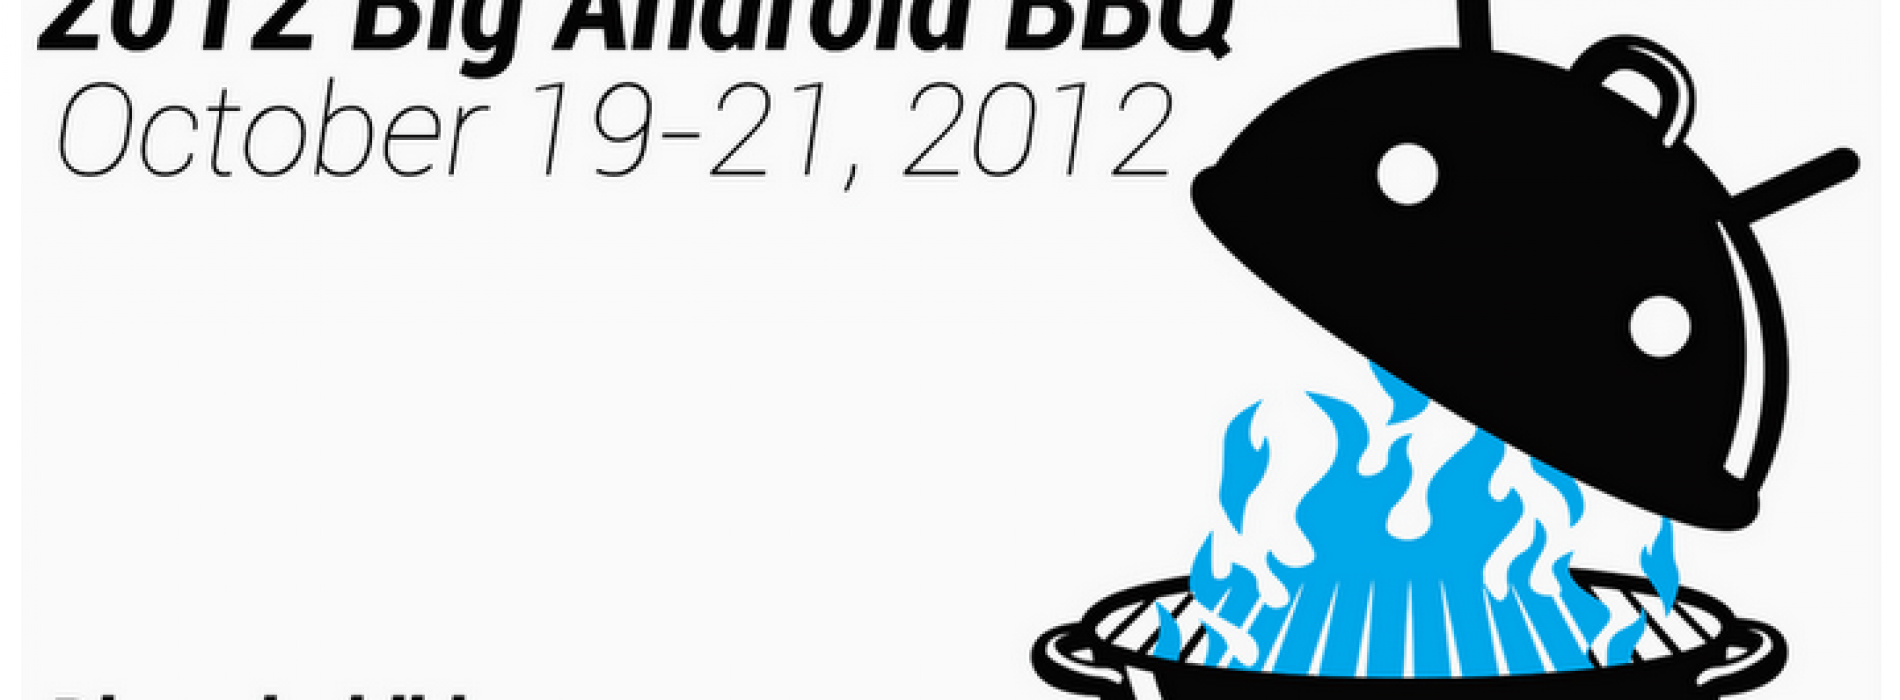 First round of speakers announced for Big Android BBQ 2012